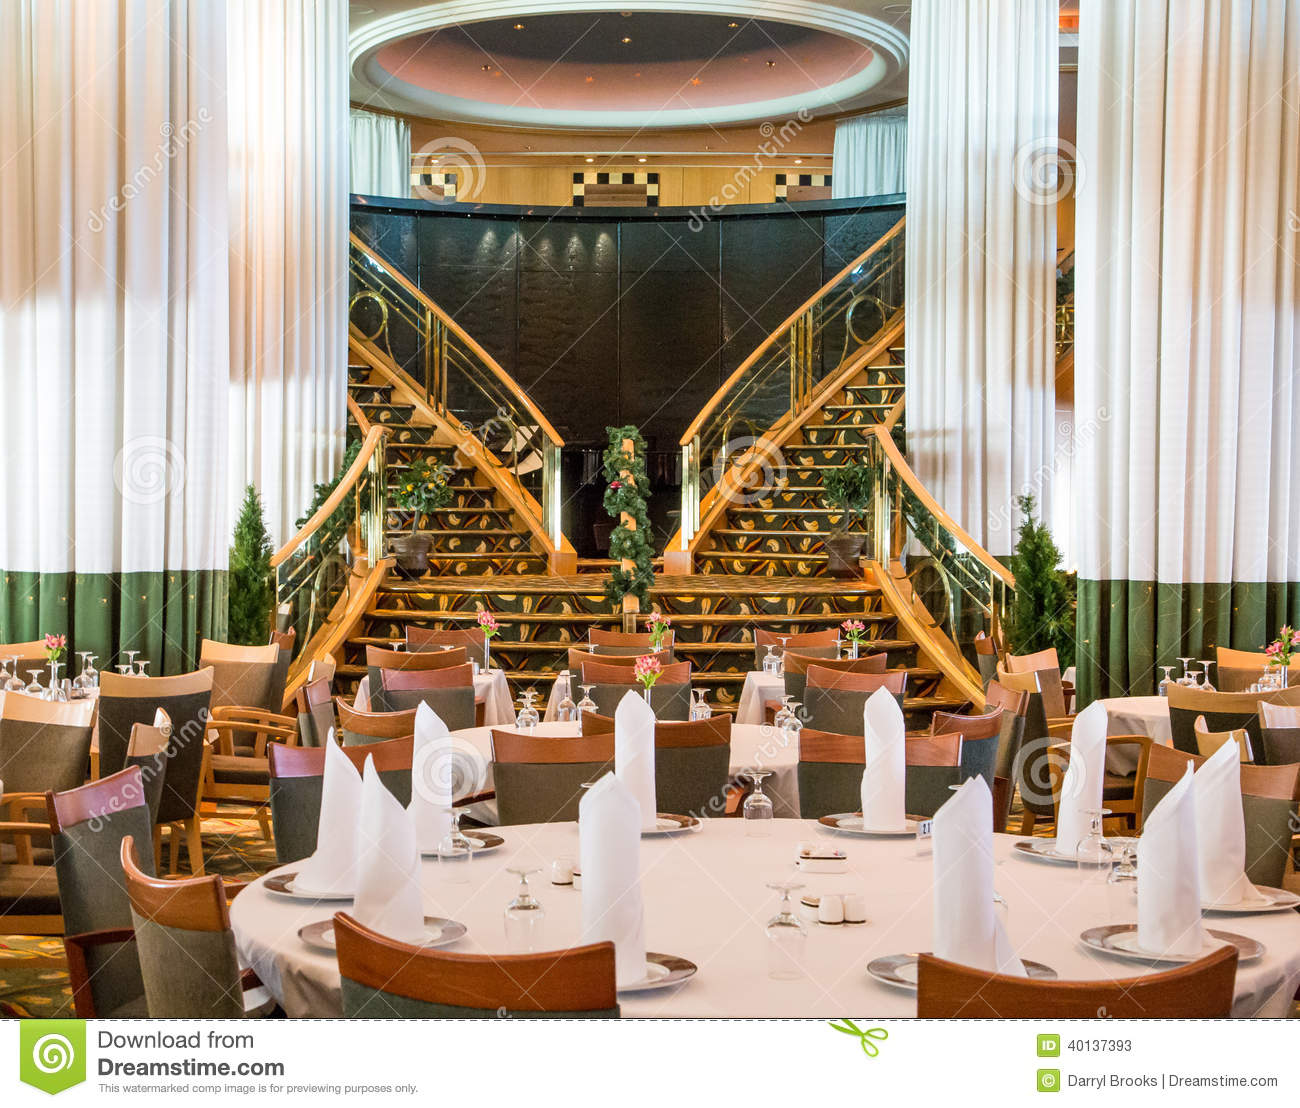 Cruise dining luxury room ship  Empty Cruise Ship Dining Room Stock Photo   Image  40137393. Ship Dining Room Set. Home Design Ideas